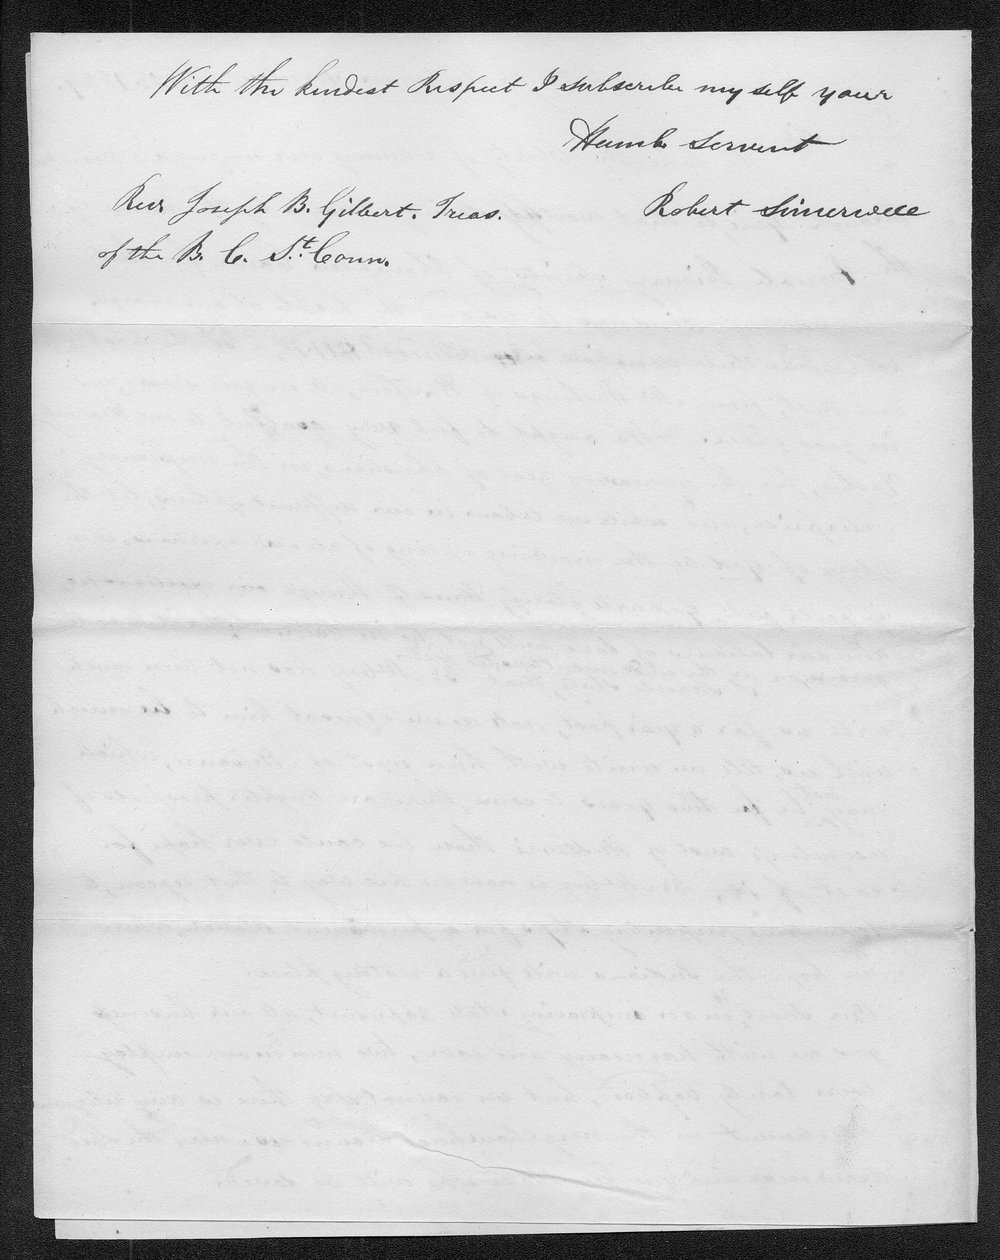 Robert Simerwell to Rev. Joseph B. Gilbert - 2